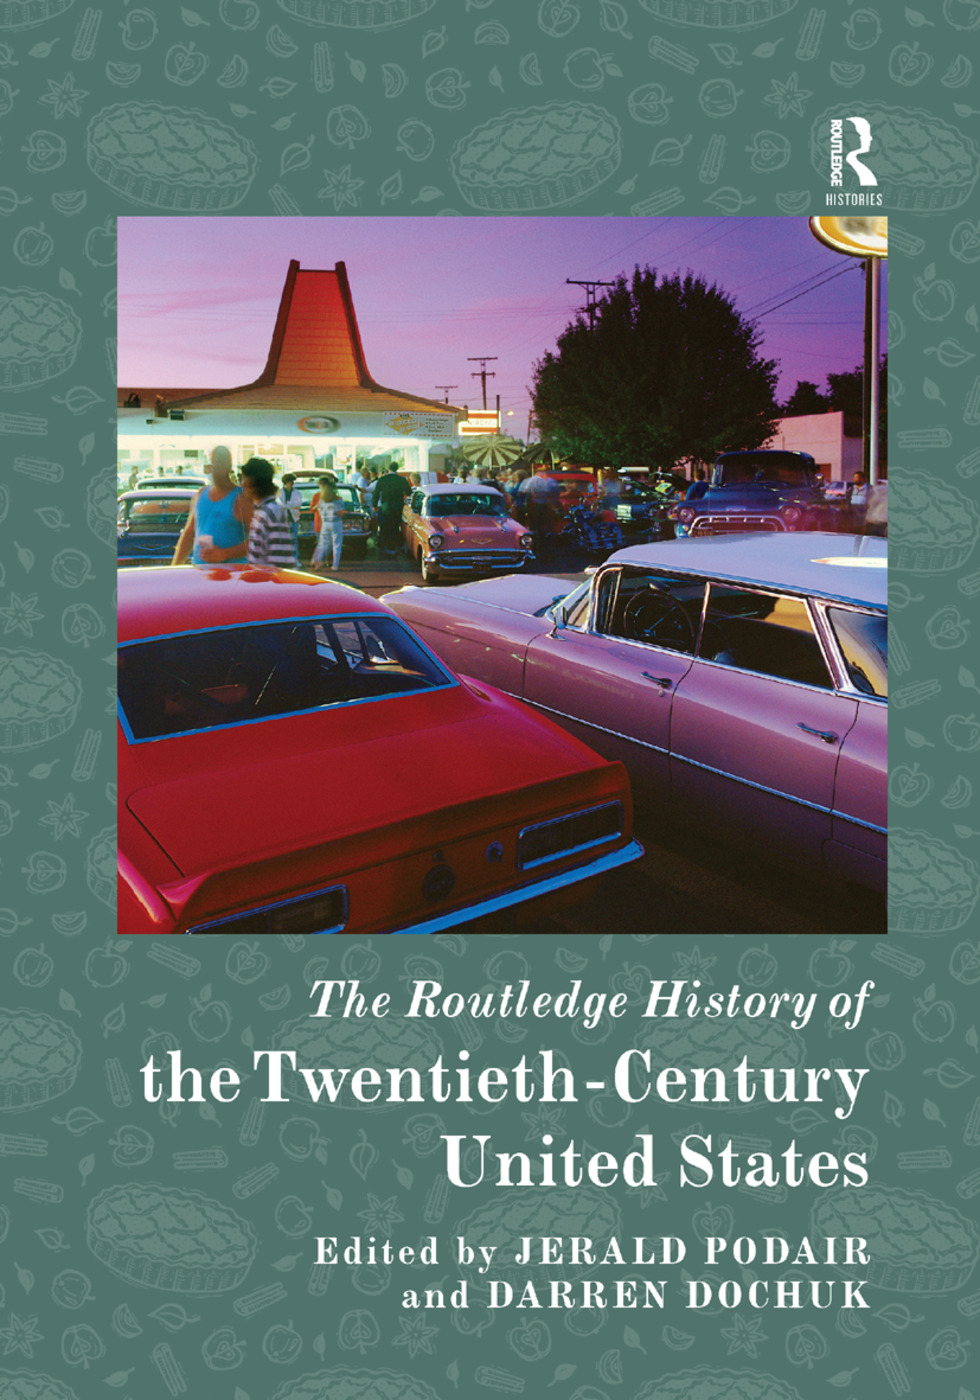 The 1920s—A Historiographical Survey